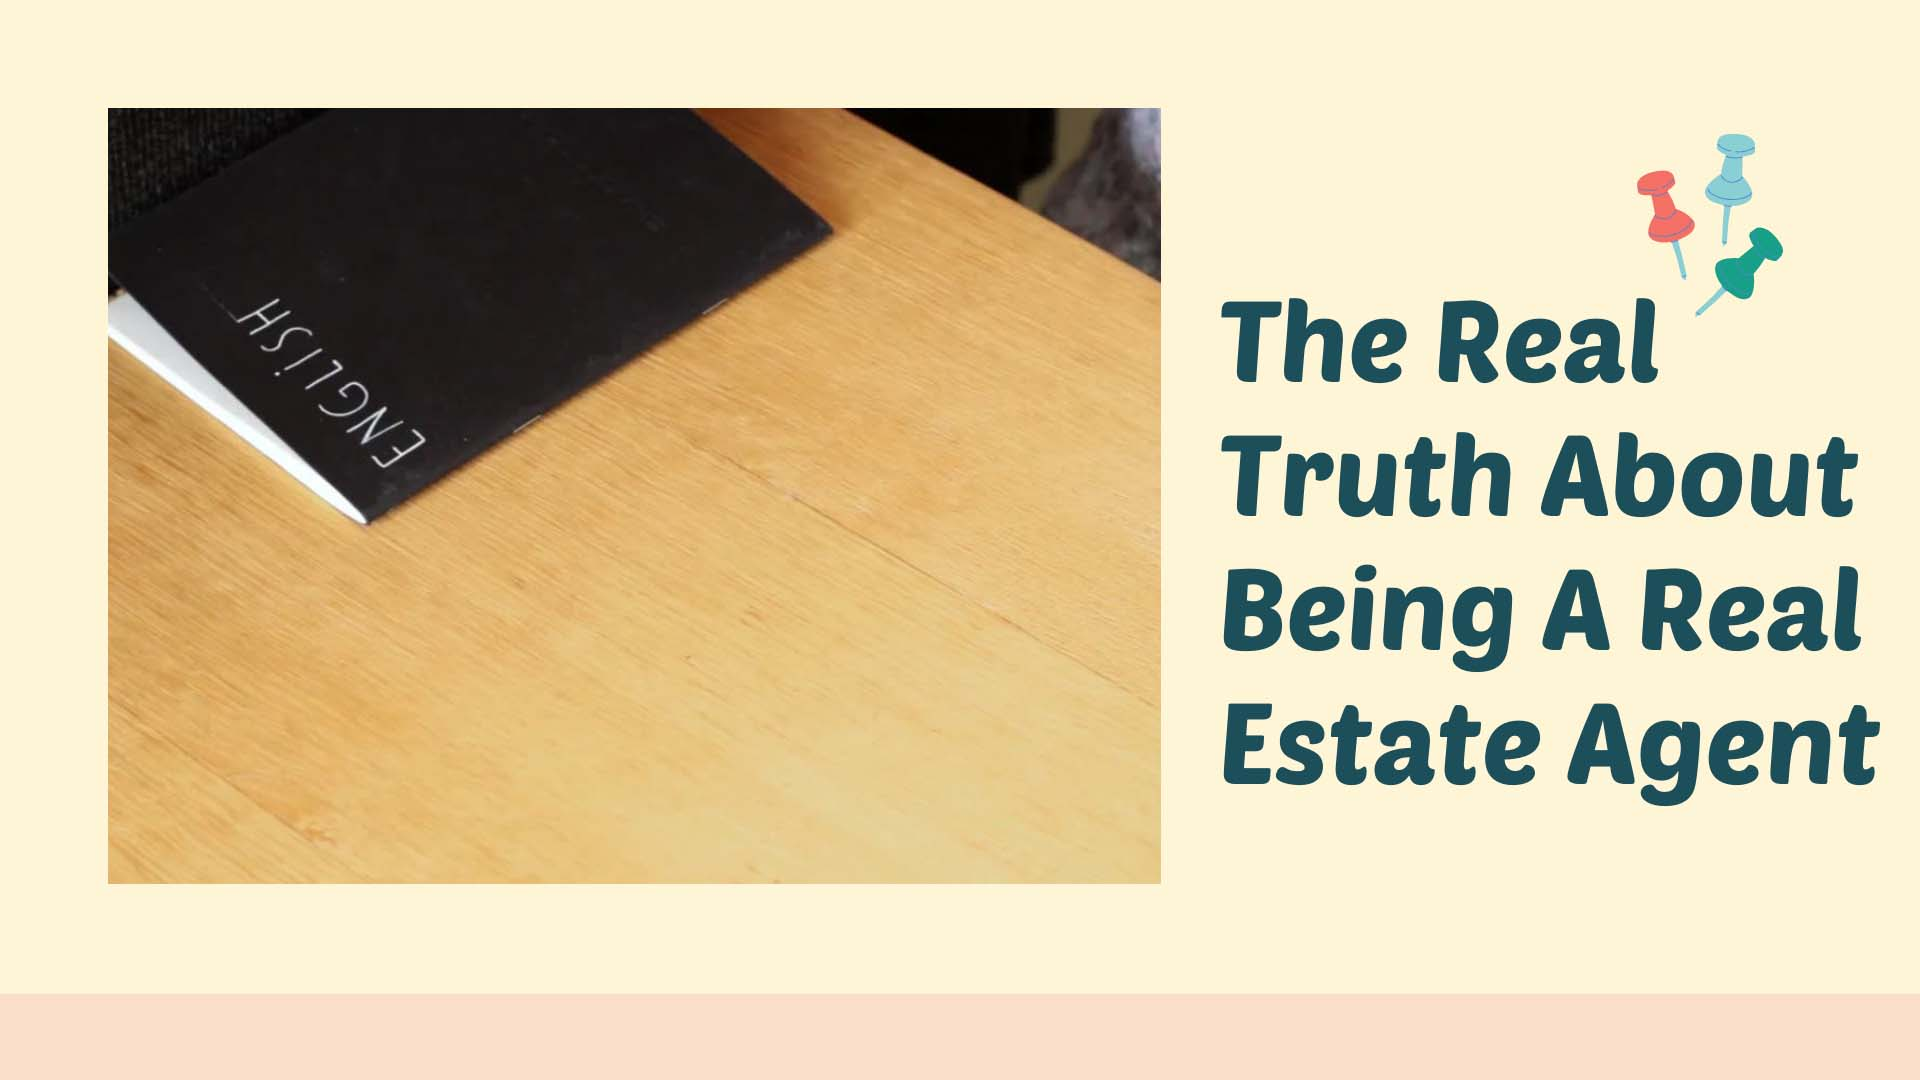 The Real Truth About Being A Real Estate Agent